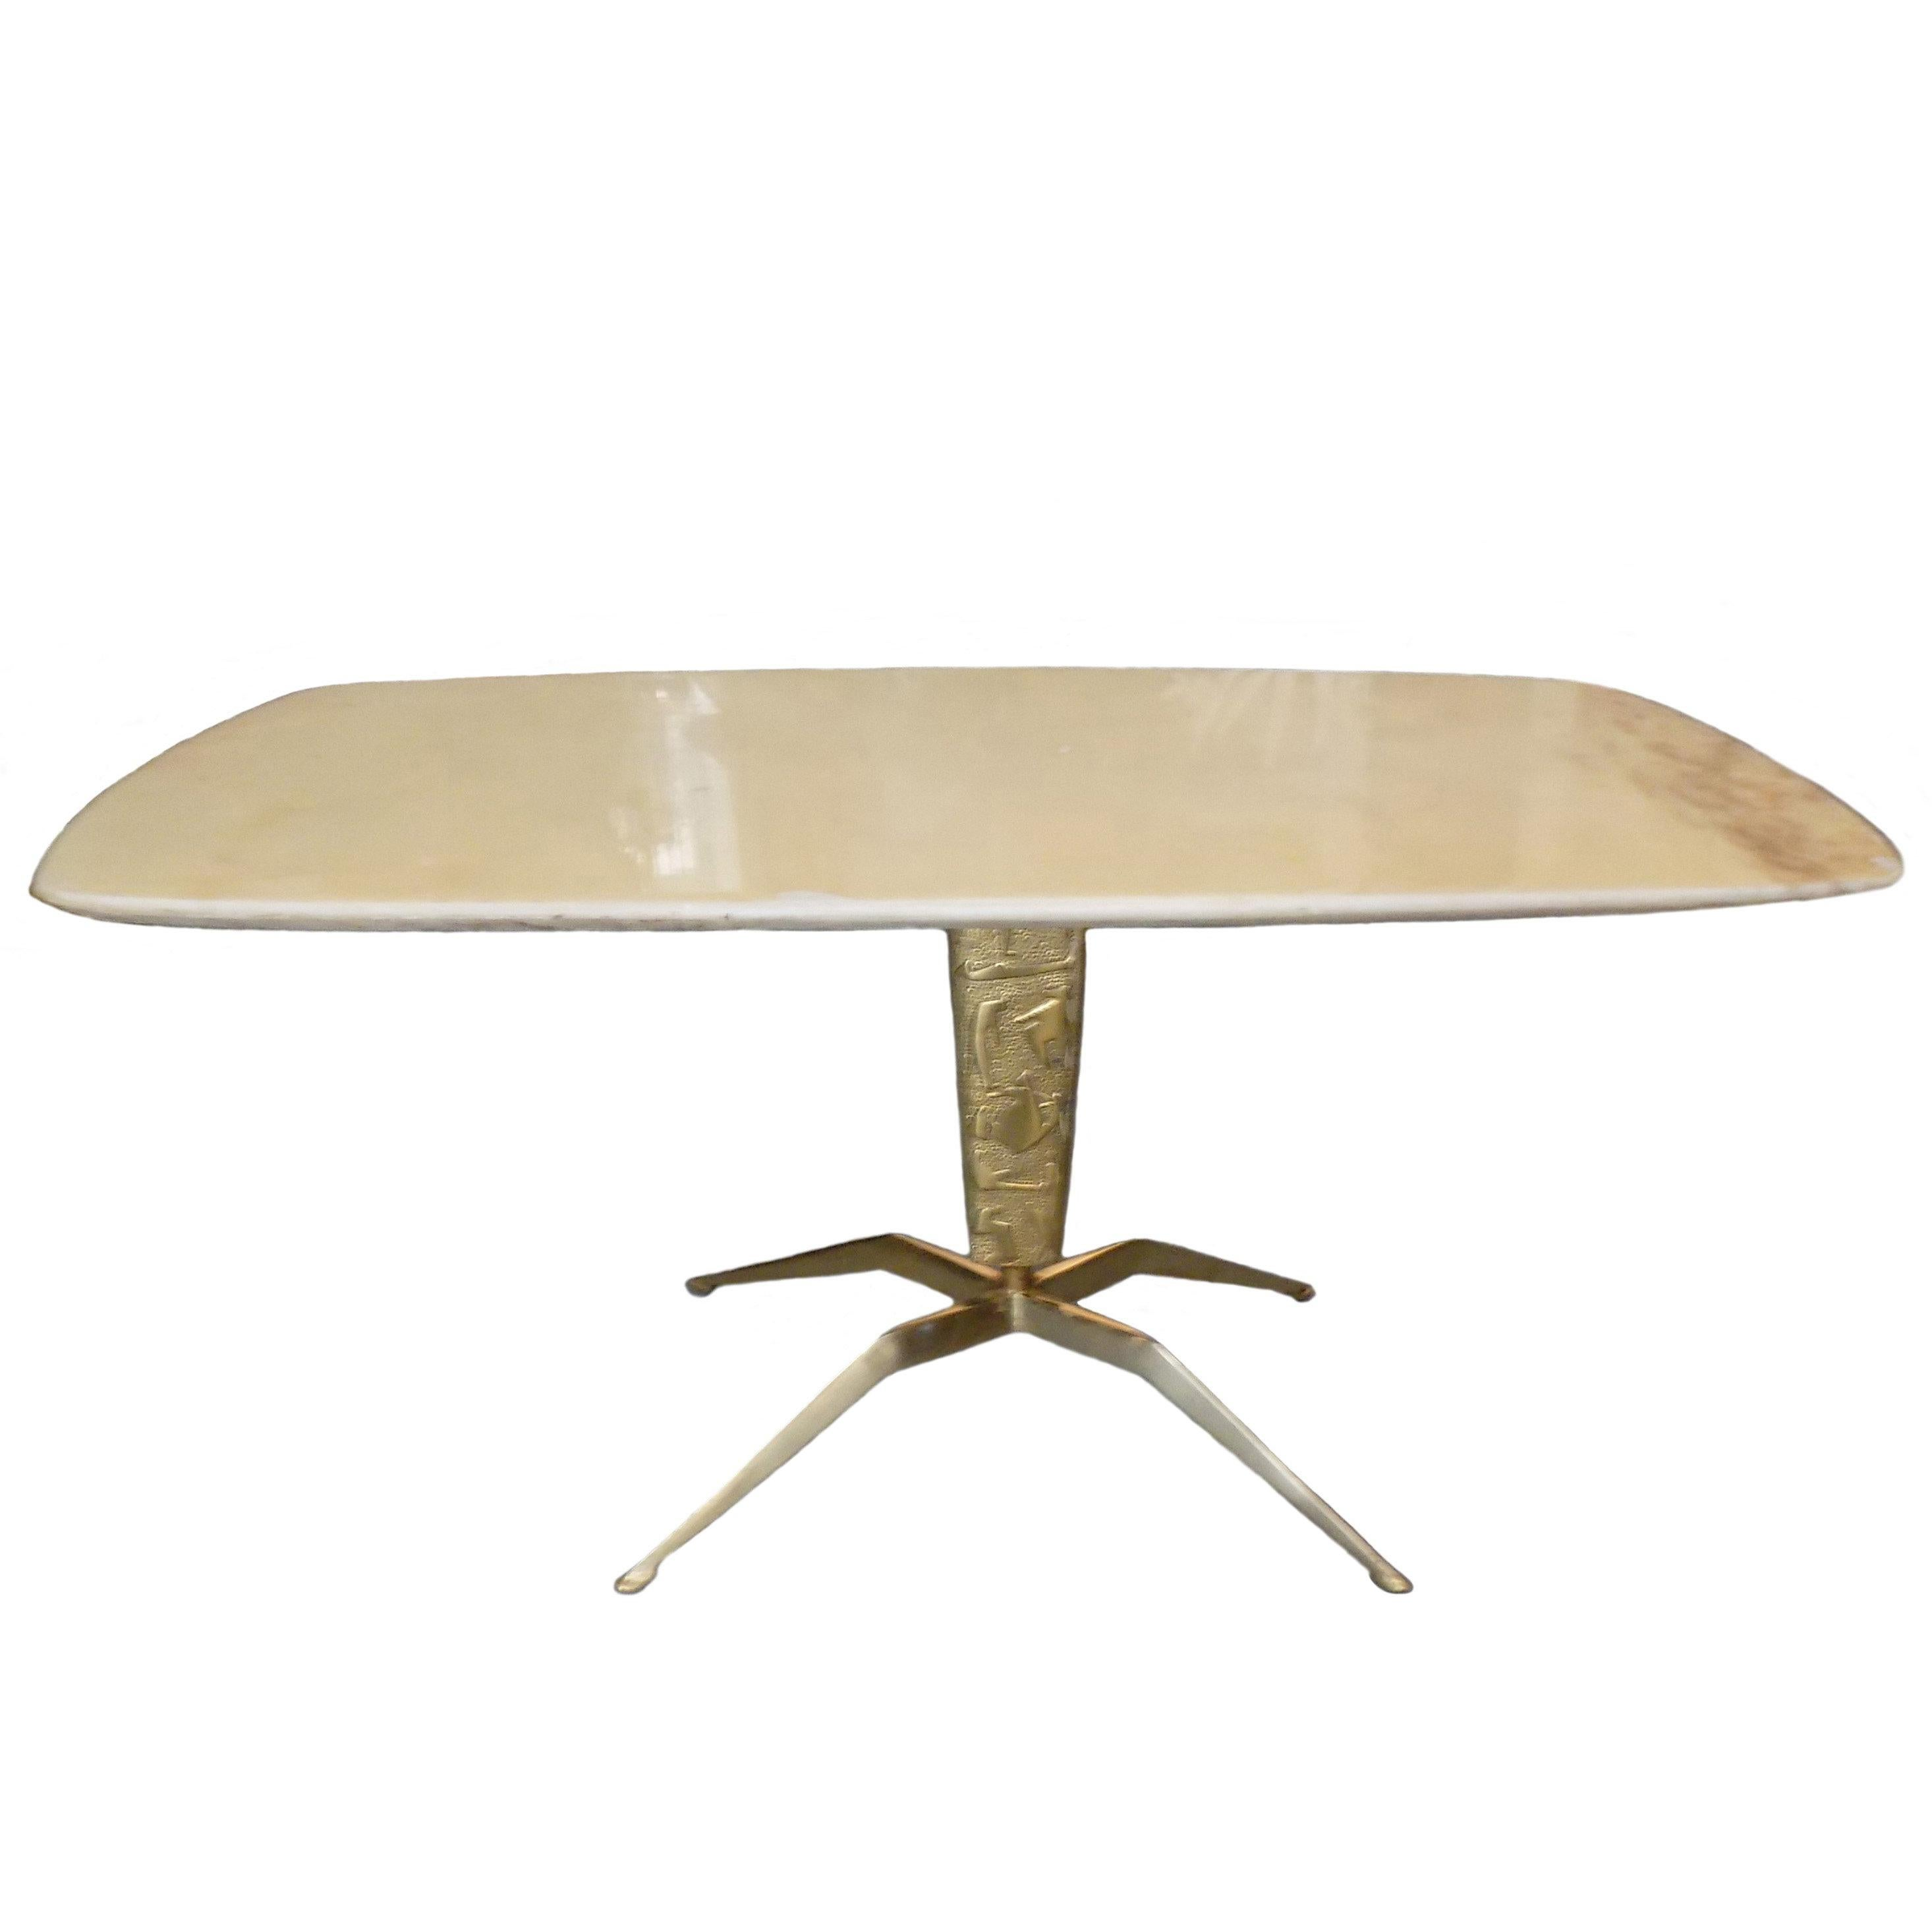 1950s Italian Marble Coffee Table on Sculptural Brass Base